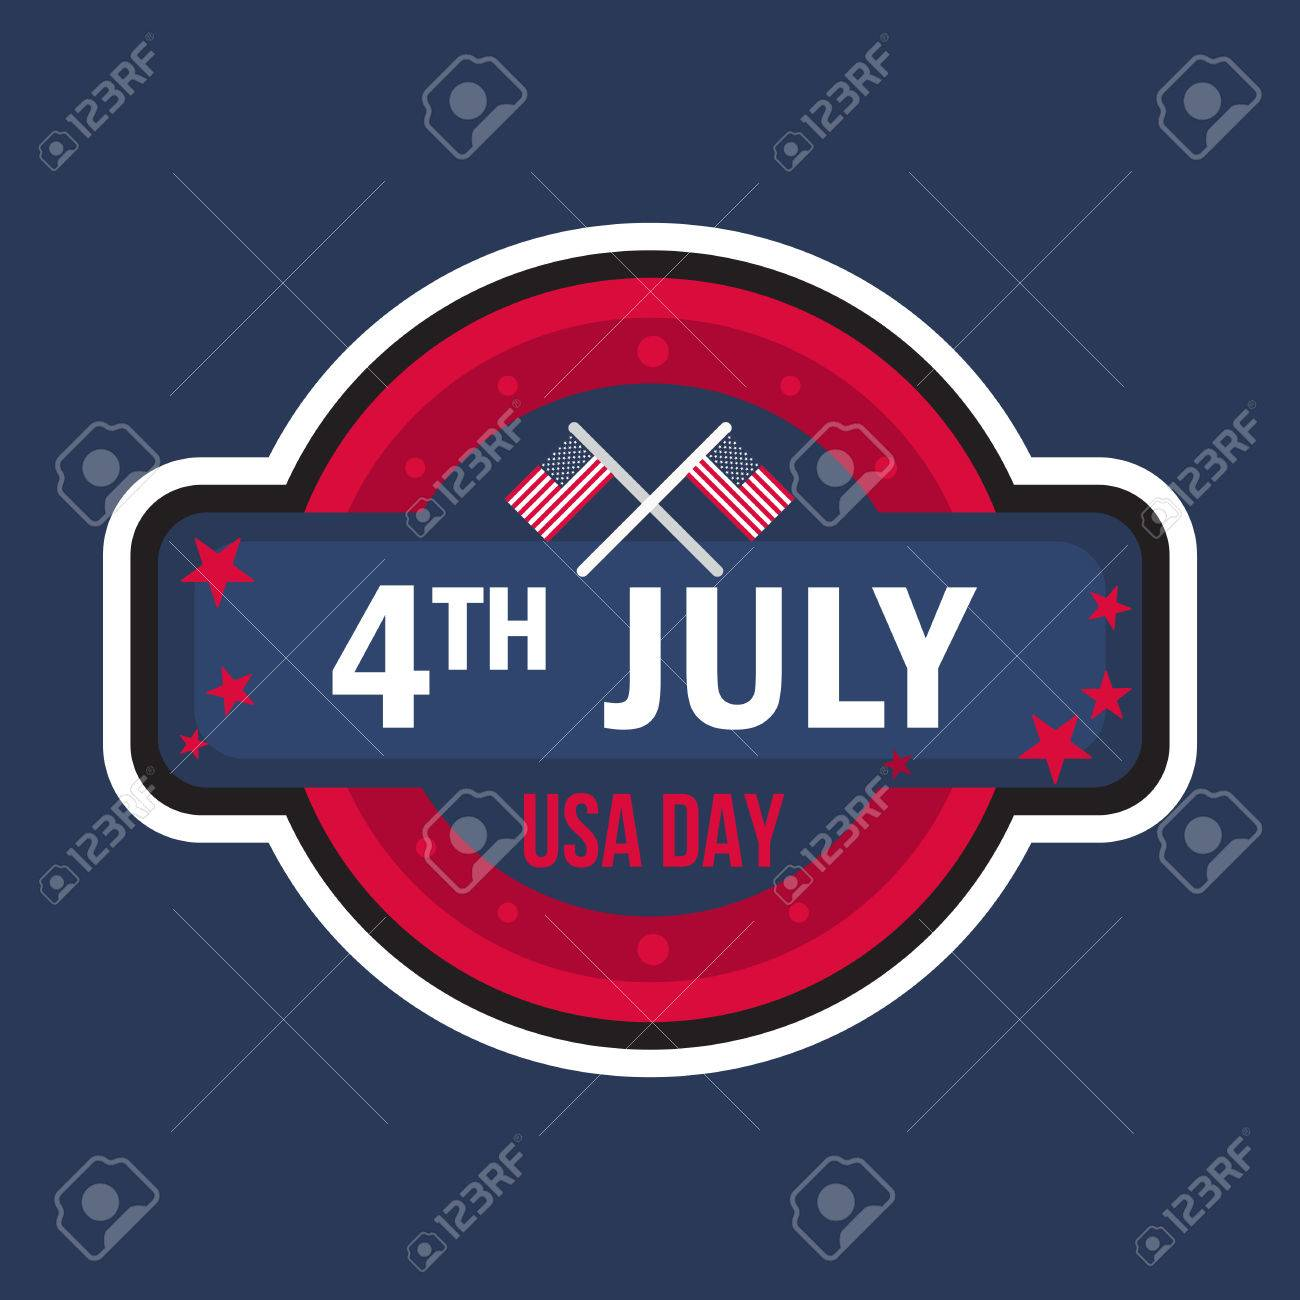 American greetings logo vector choice image greetings card design 4th of july usa independence day celebration banner national m4hsunfo